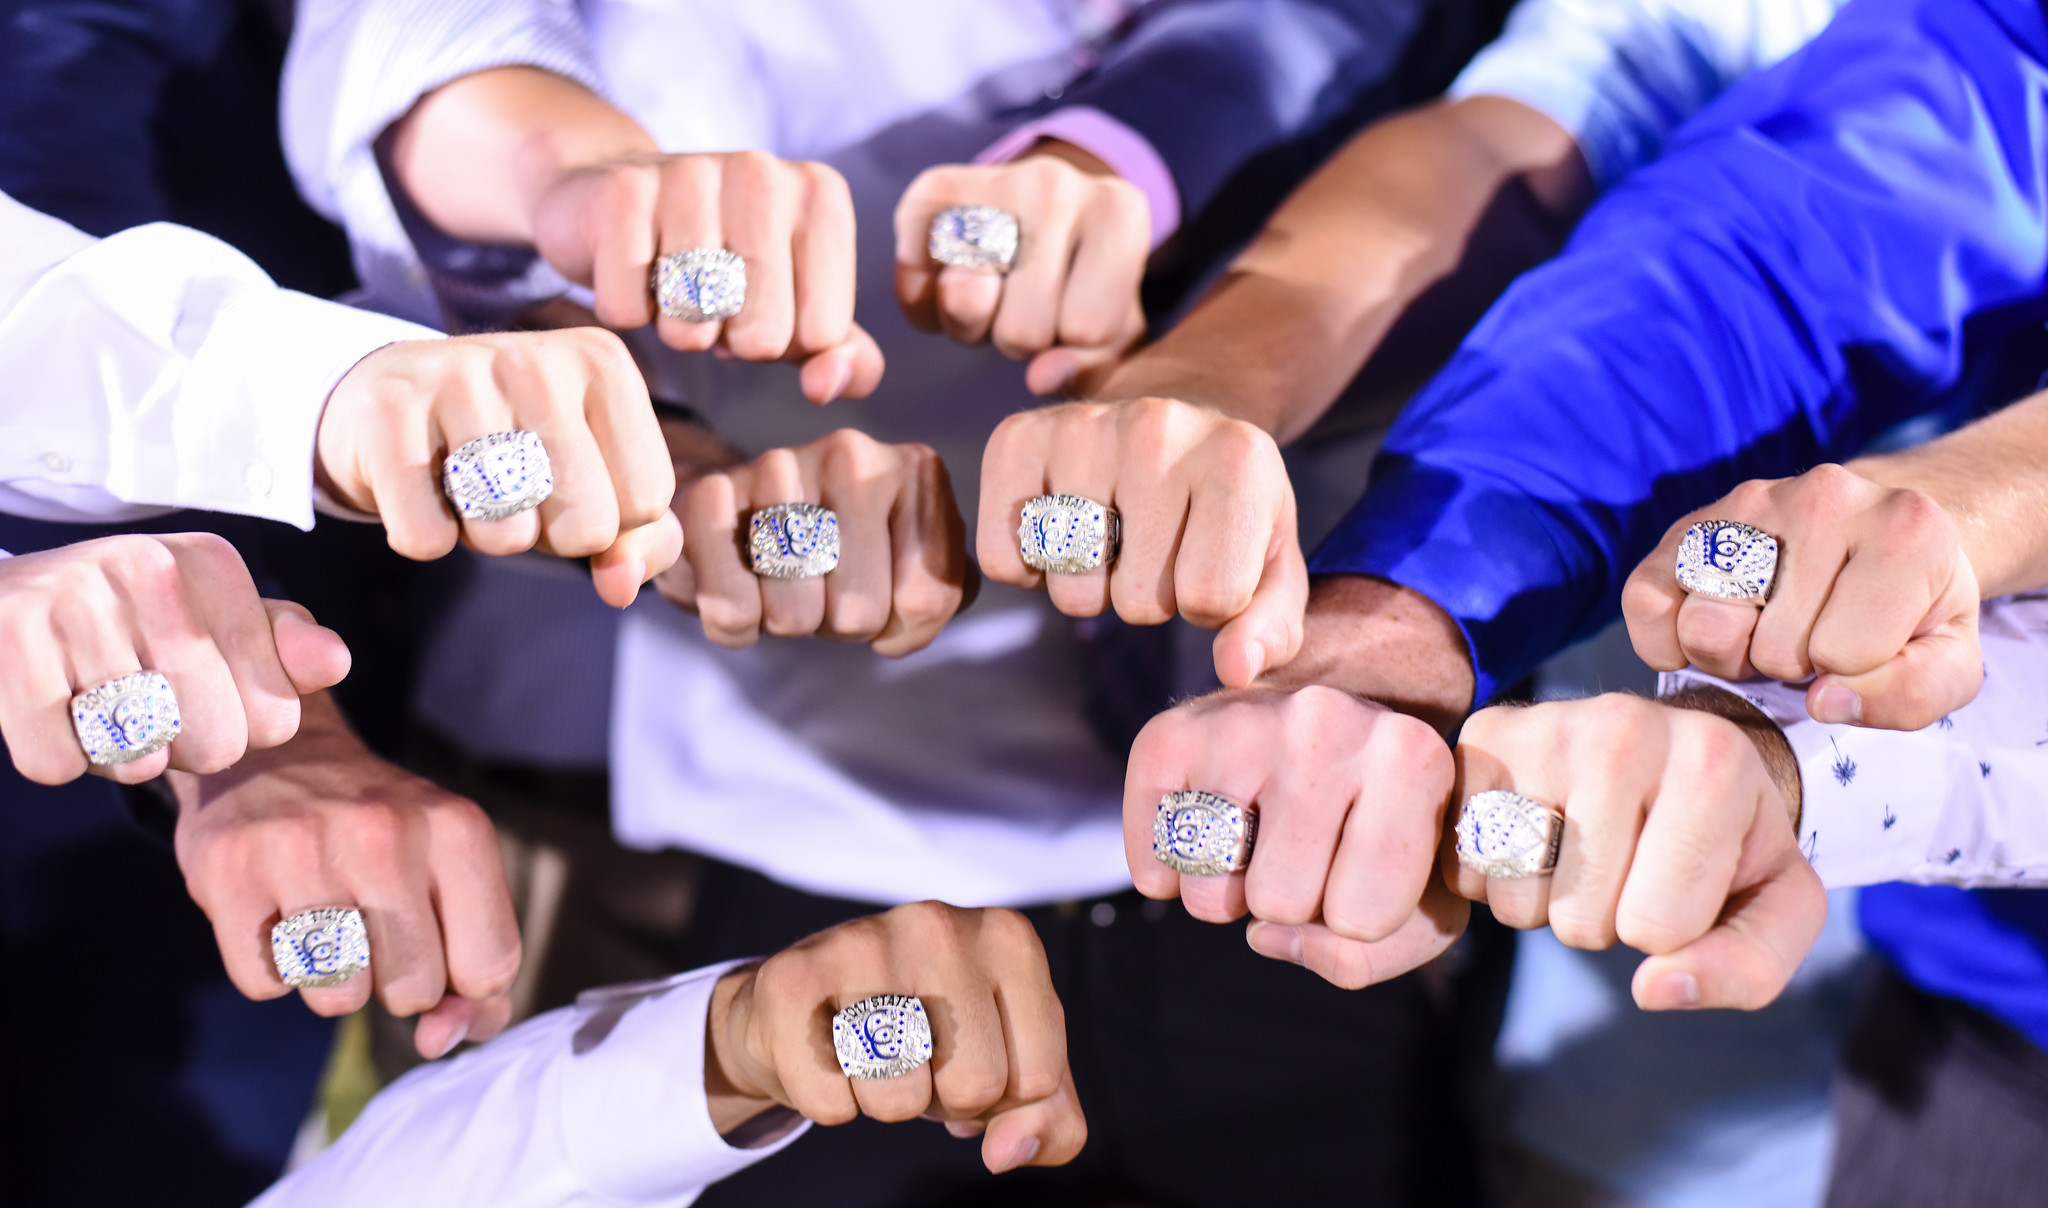 Football State Championship Ring Ceremony